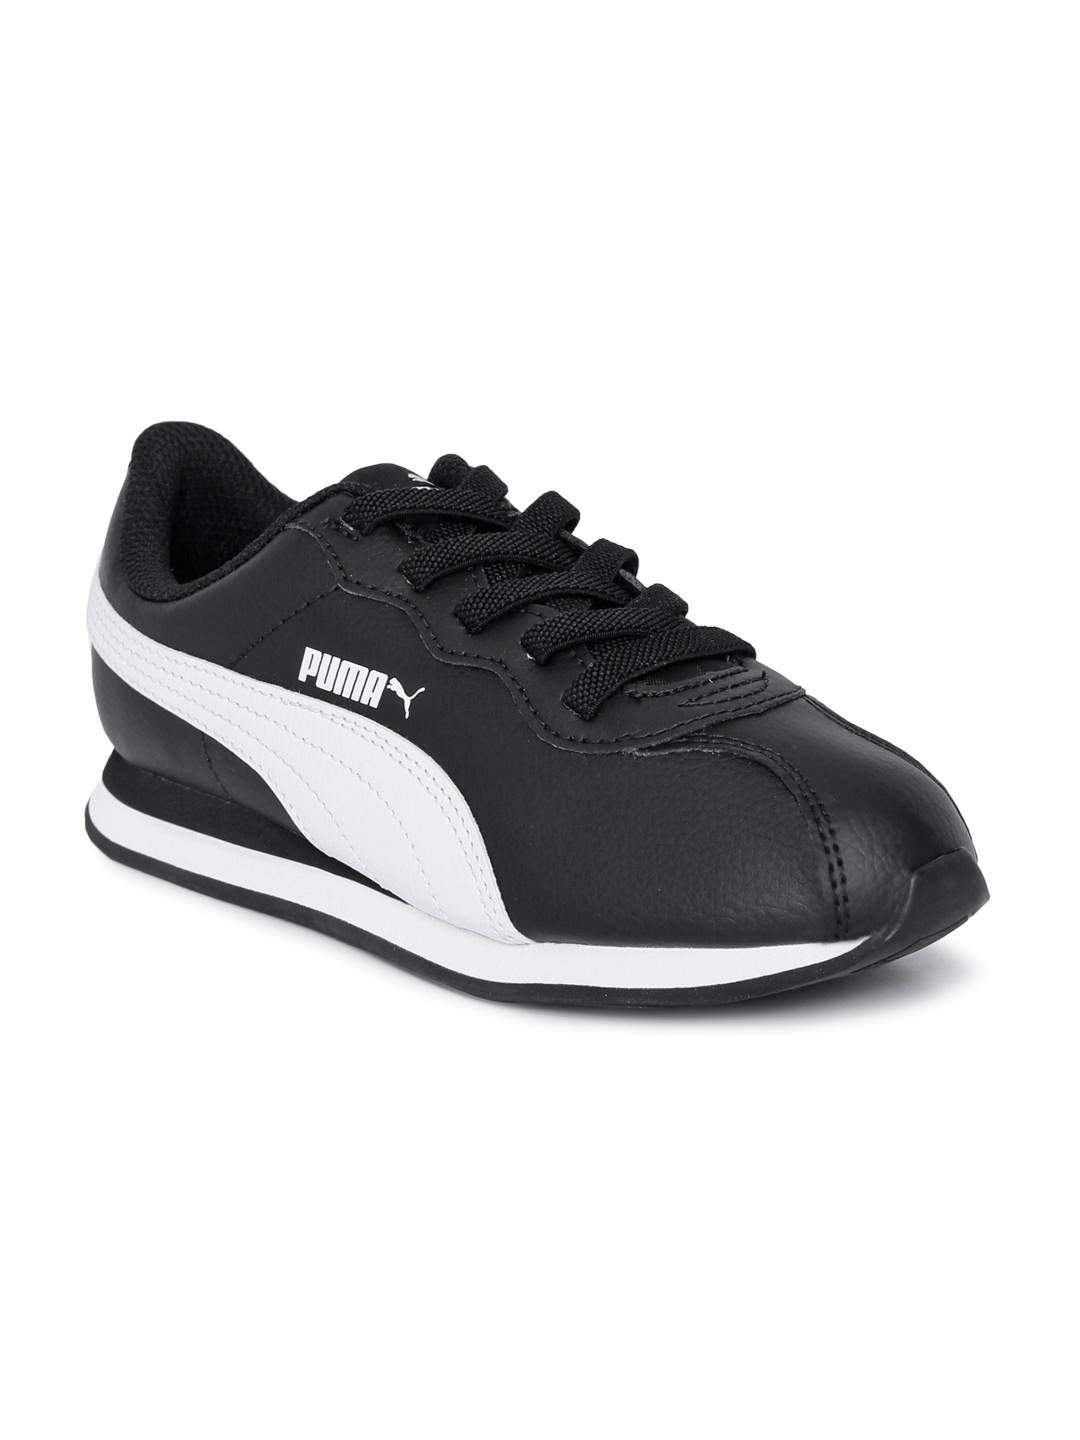 179857689a7 Buy Puma Kids Black Leather Turin II AC PS Sneakers - Casual Shoes ...